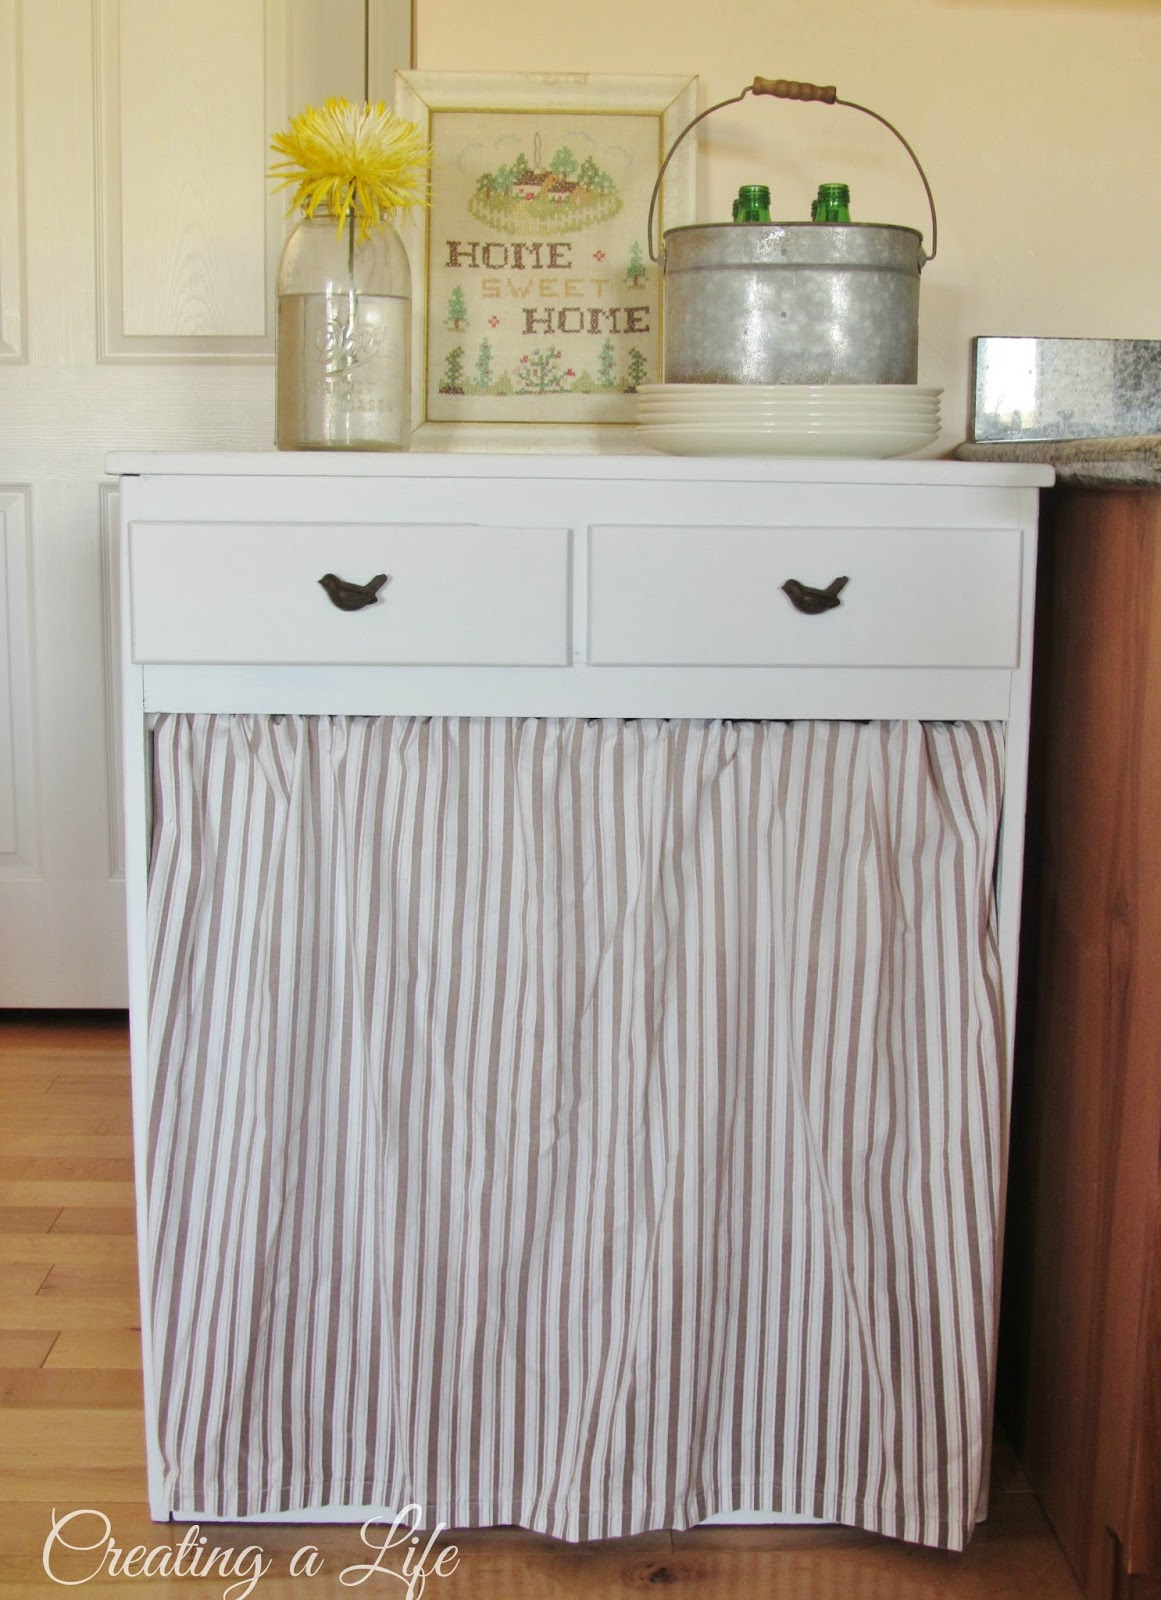 Retro Trash Cans Kitchen How To Hide A Trash Can Disguise Ugly Garbage Can